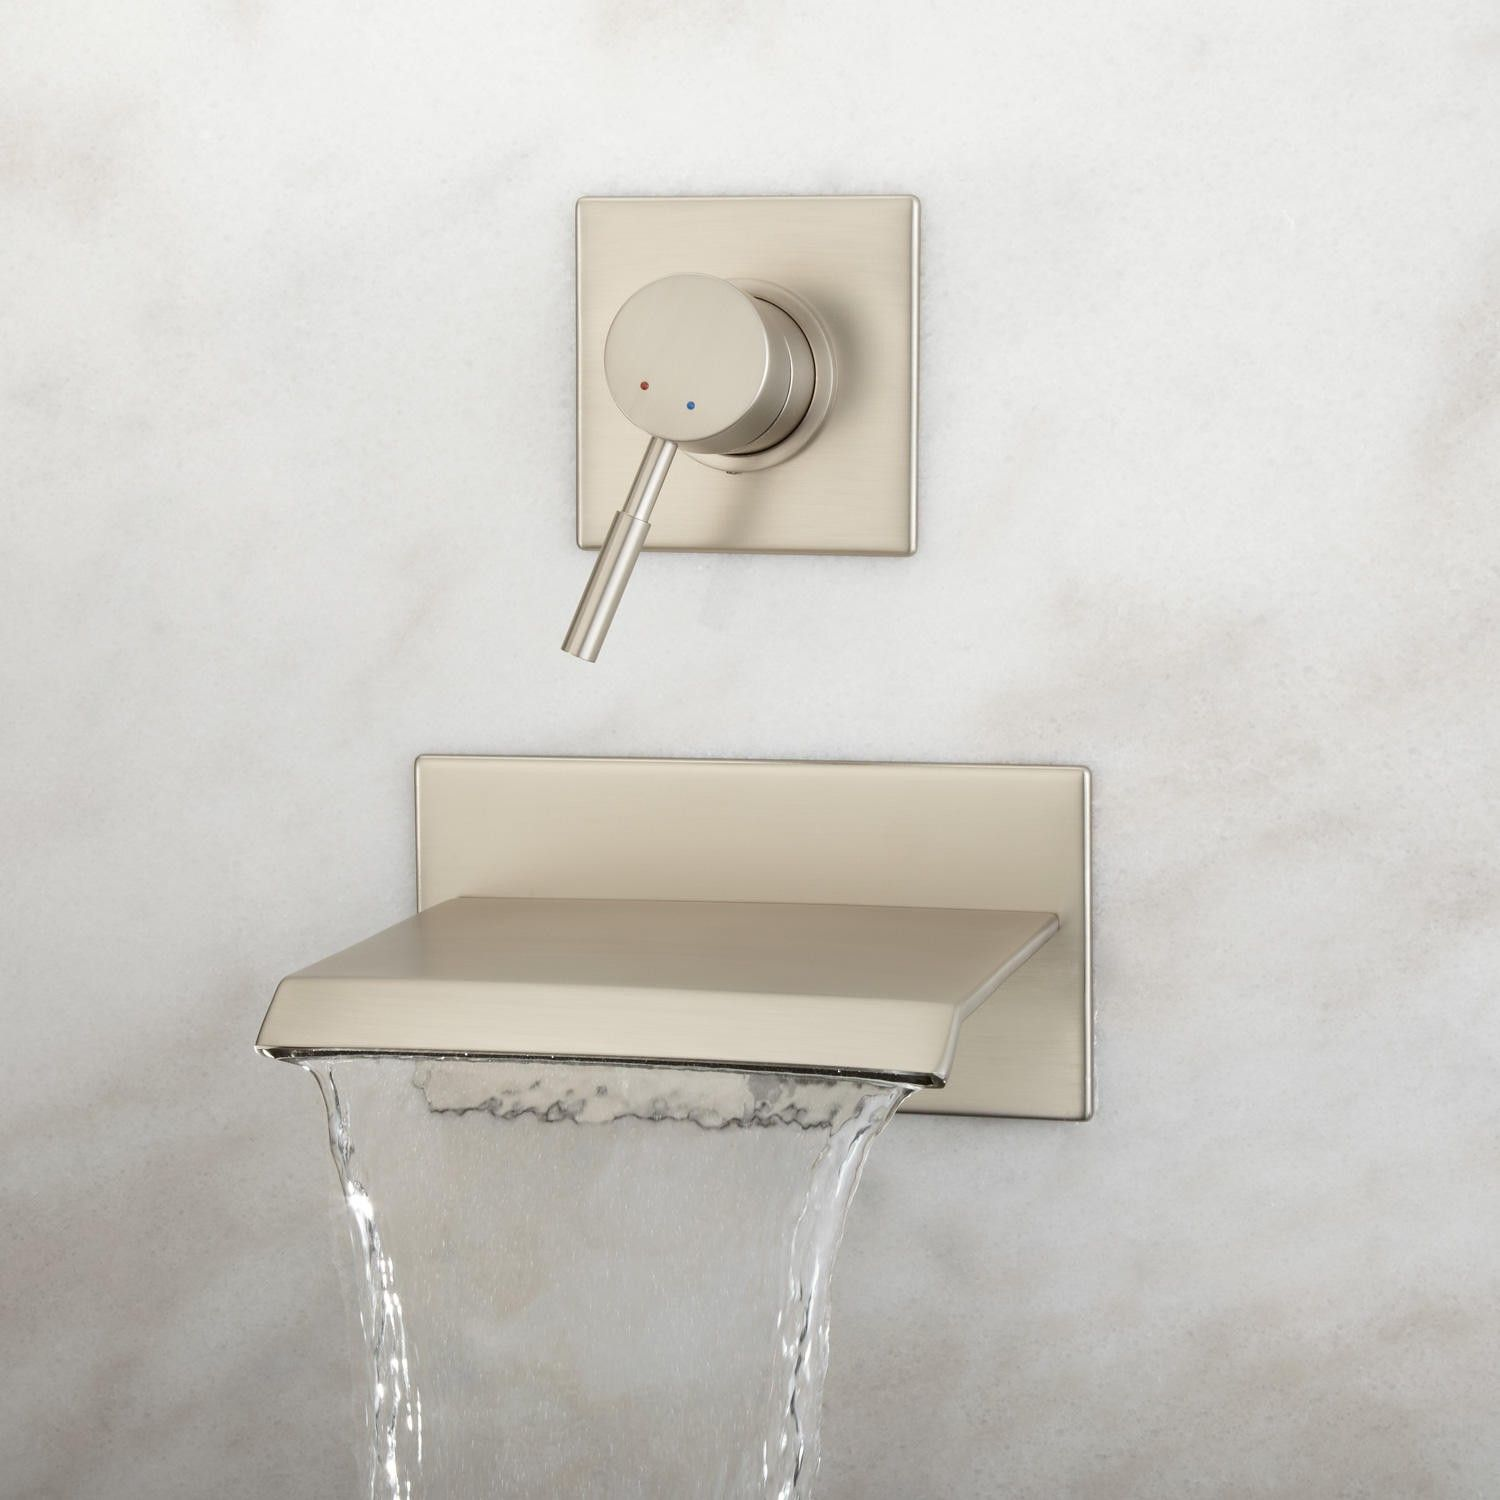 Lavelle Wall-Mount Waterfall Tub Faucet | Faucet, Wall mount and Tubs